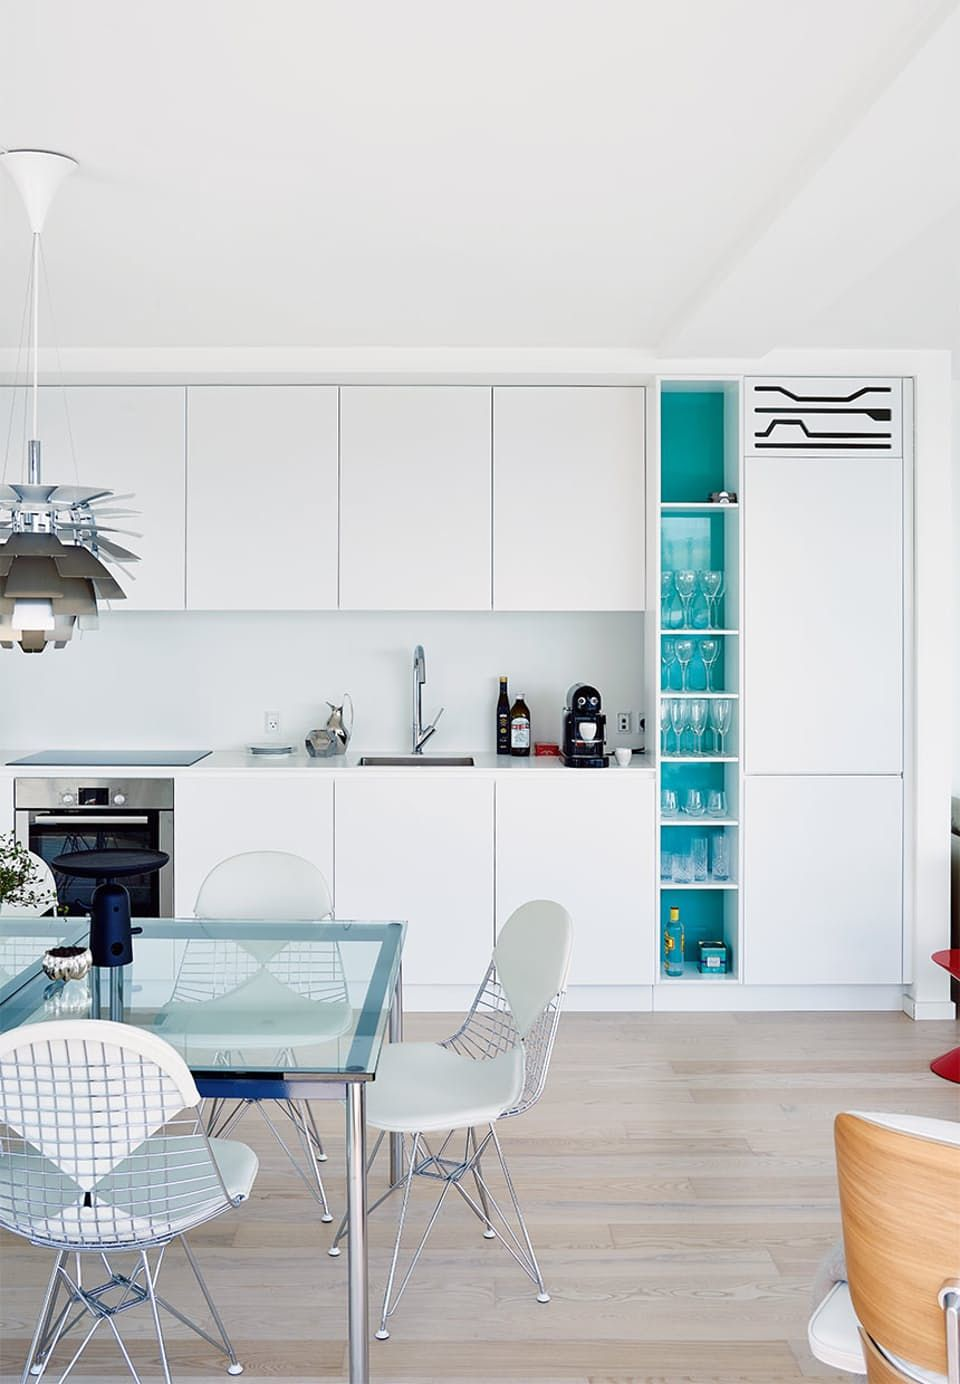 White kitchen with a maritime touch. Simpel and elegant.